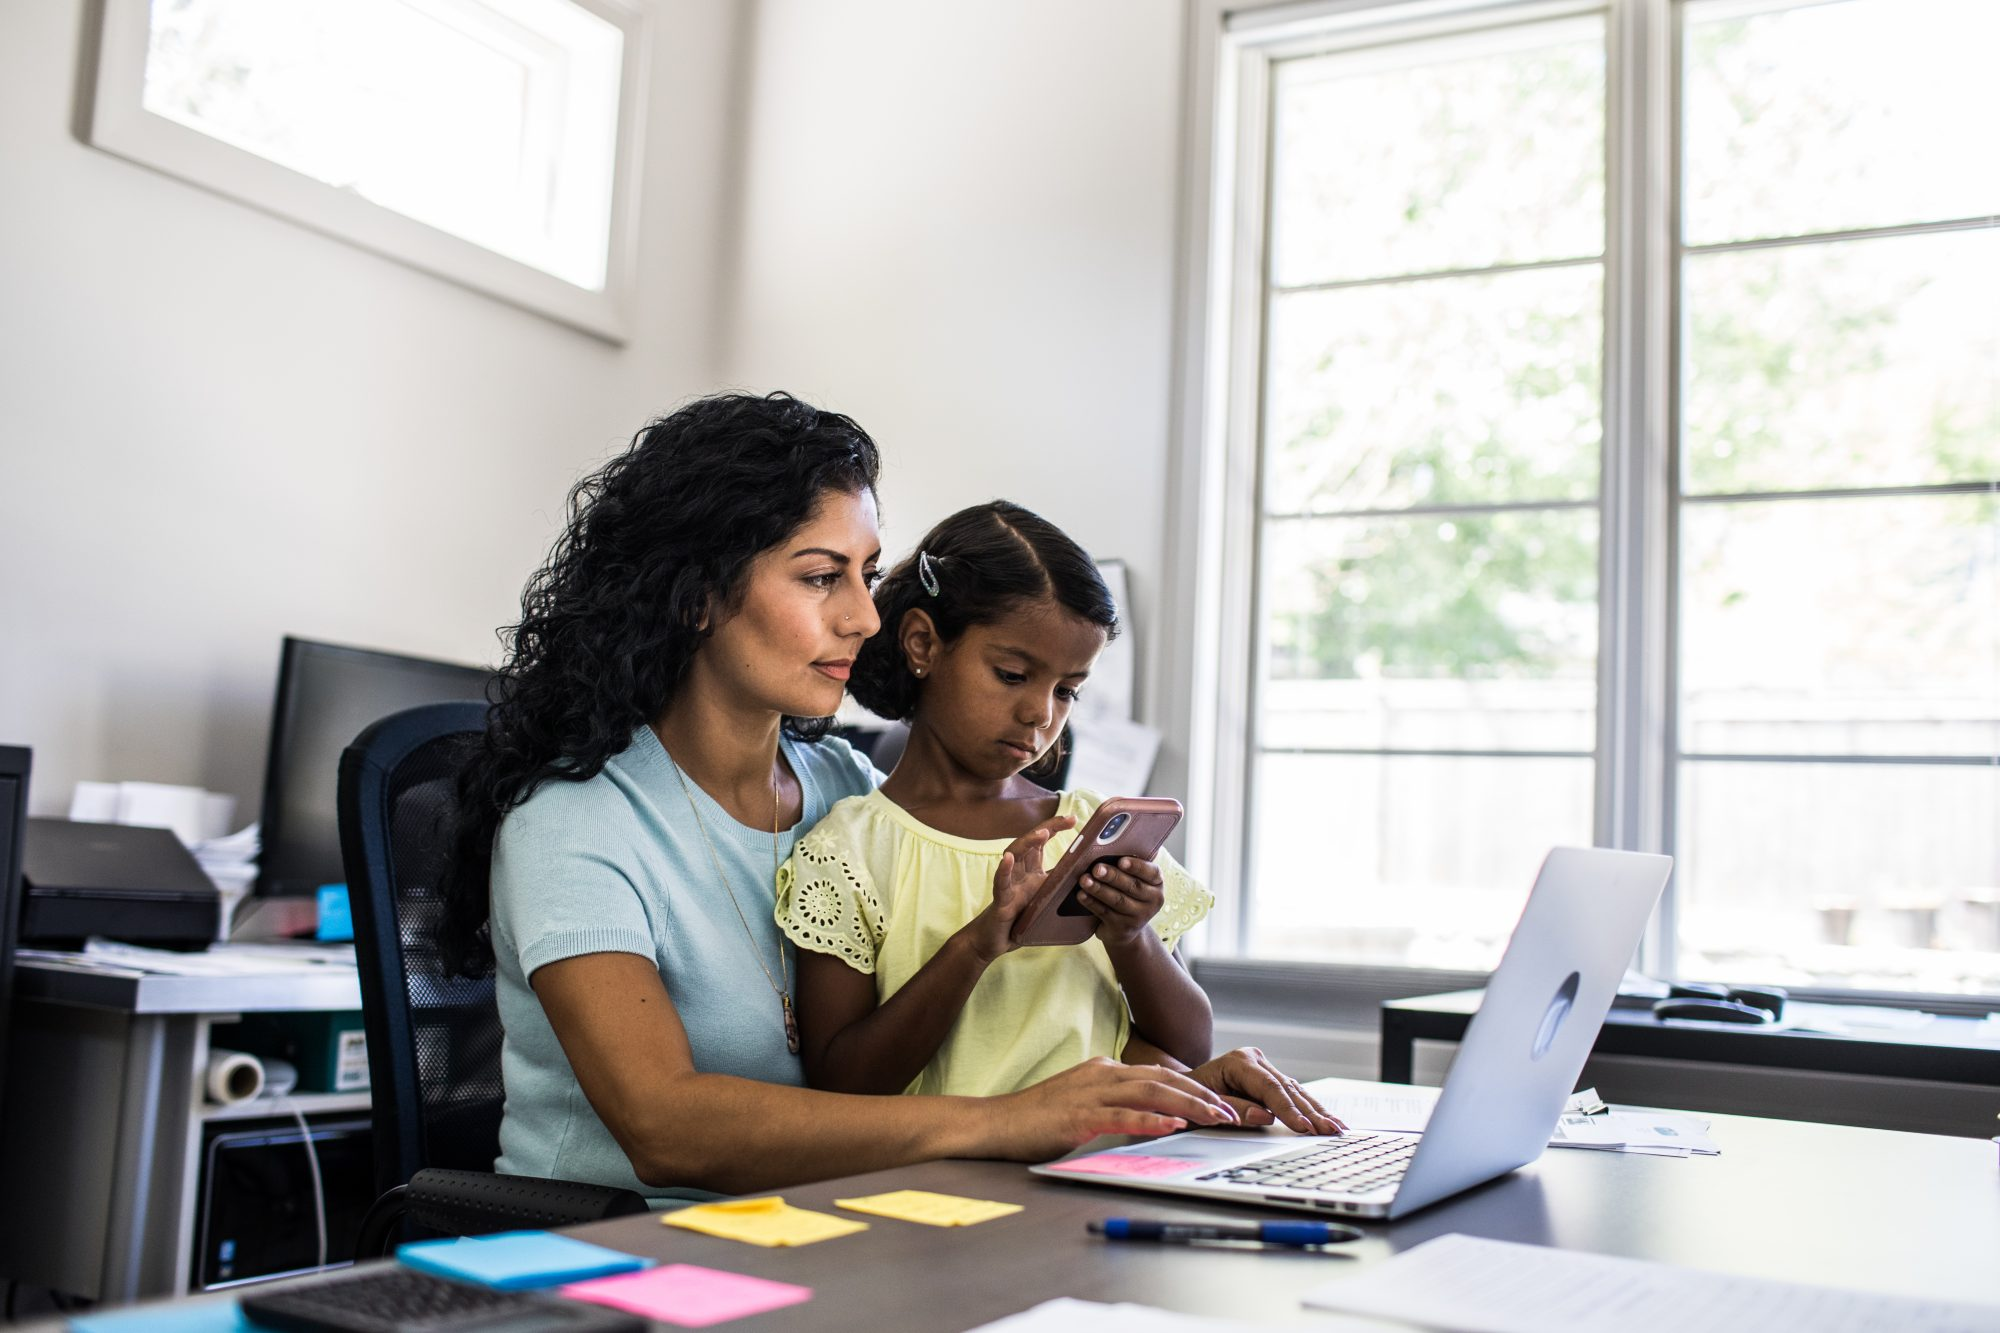 flexible schedule for working parents, flexible hours for working parents